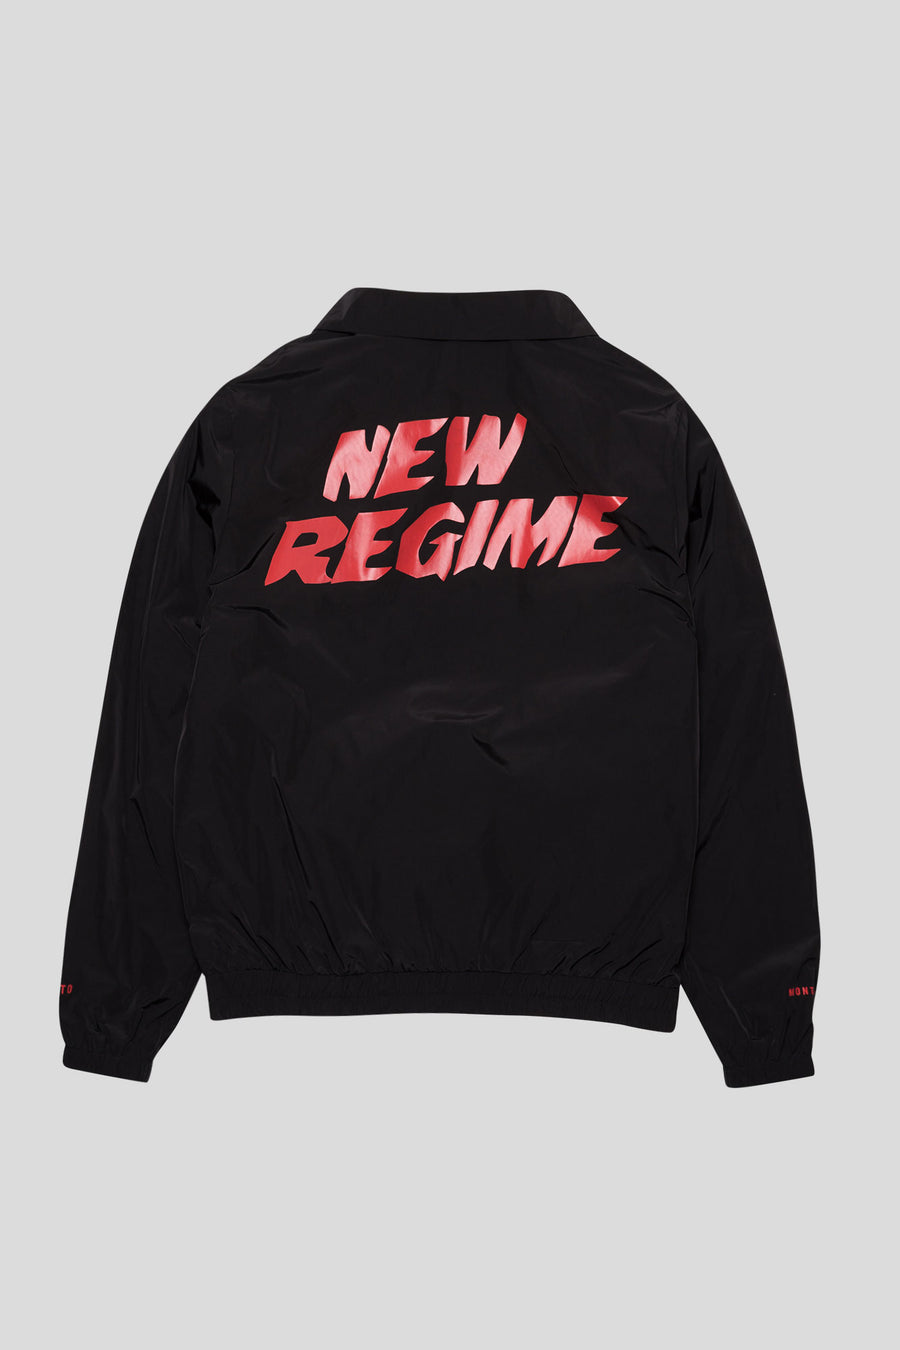 Atelier New Regime X Red Bull Windbreaker